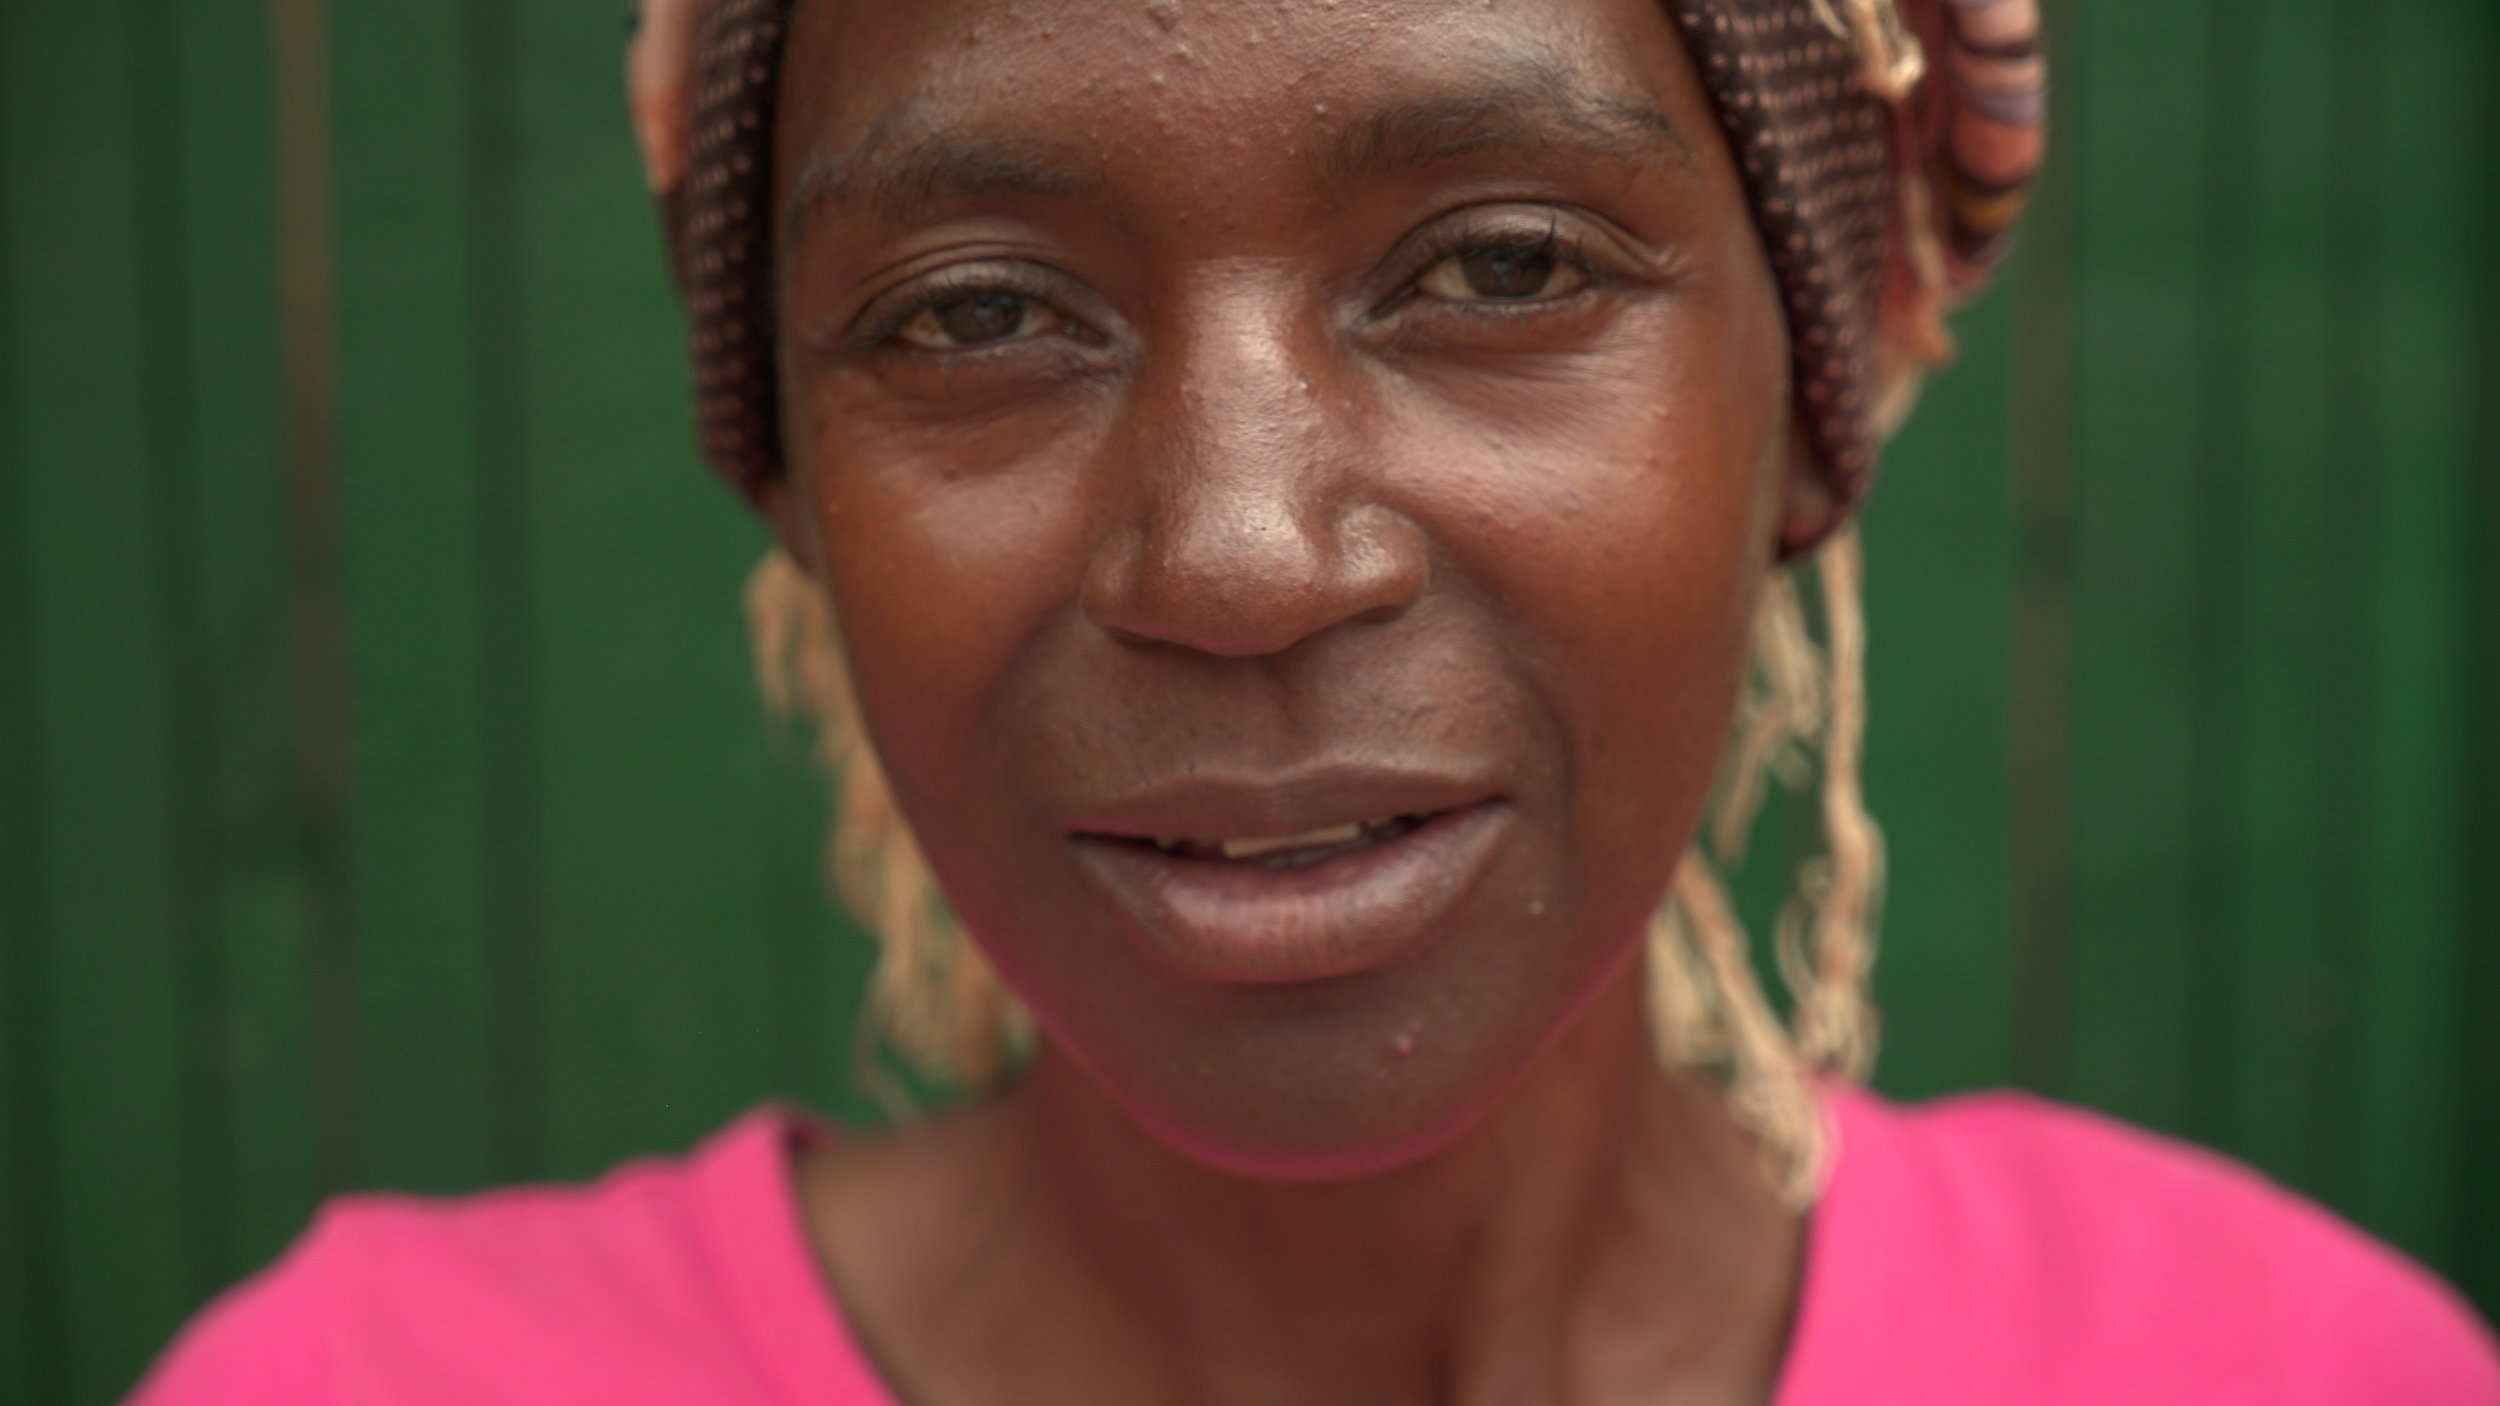 Goretti - is 51 years old and has 2 adopted children, who are genocide orphans. Goretti commutes one hour to the bakery and has been able to buy a pig for breeding with her earnings. When the bakery is not in operation she makes around $5 per month.